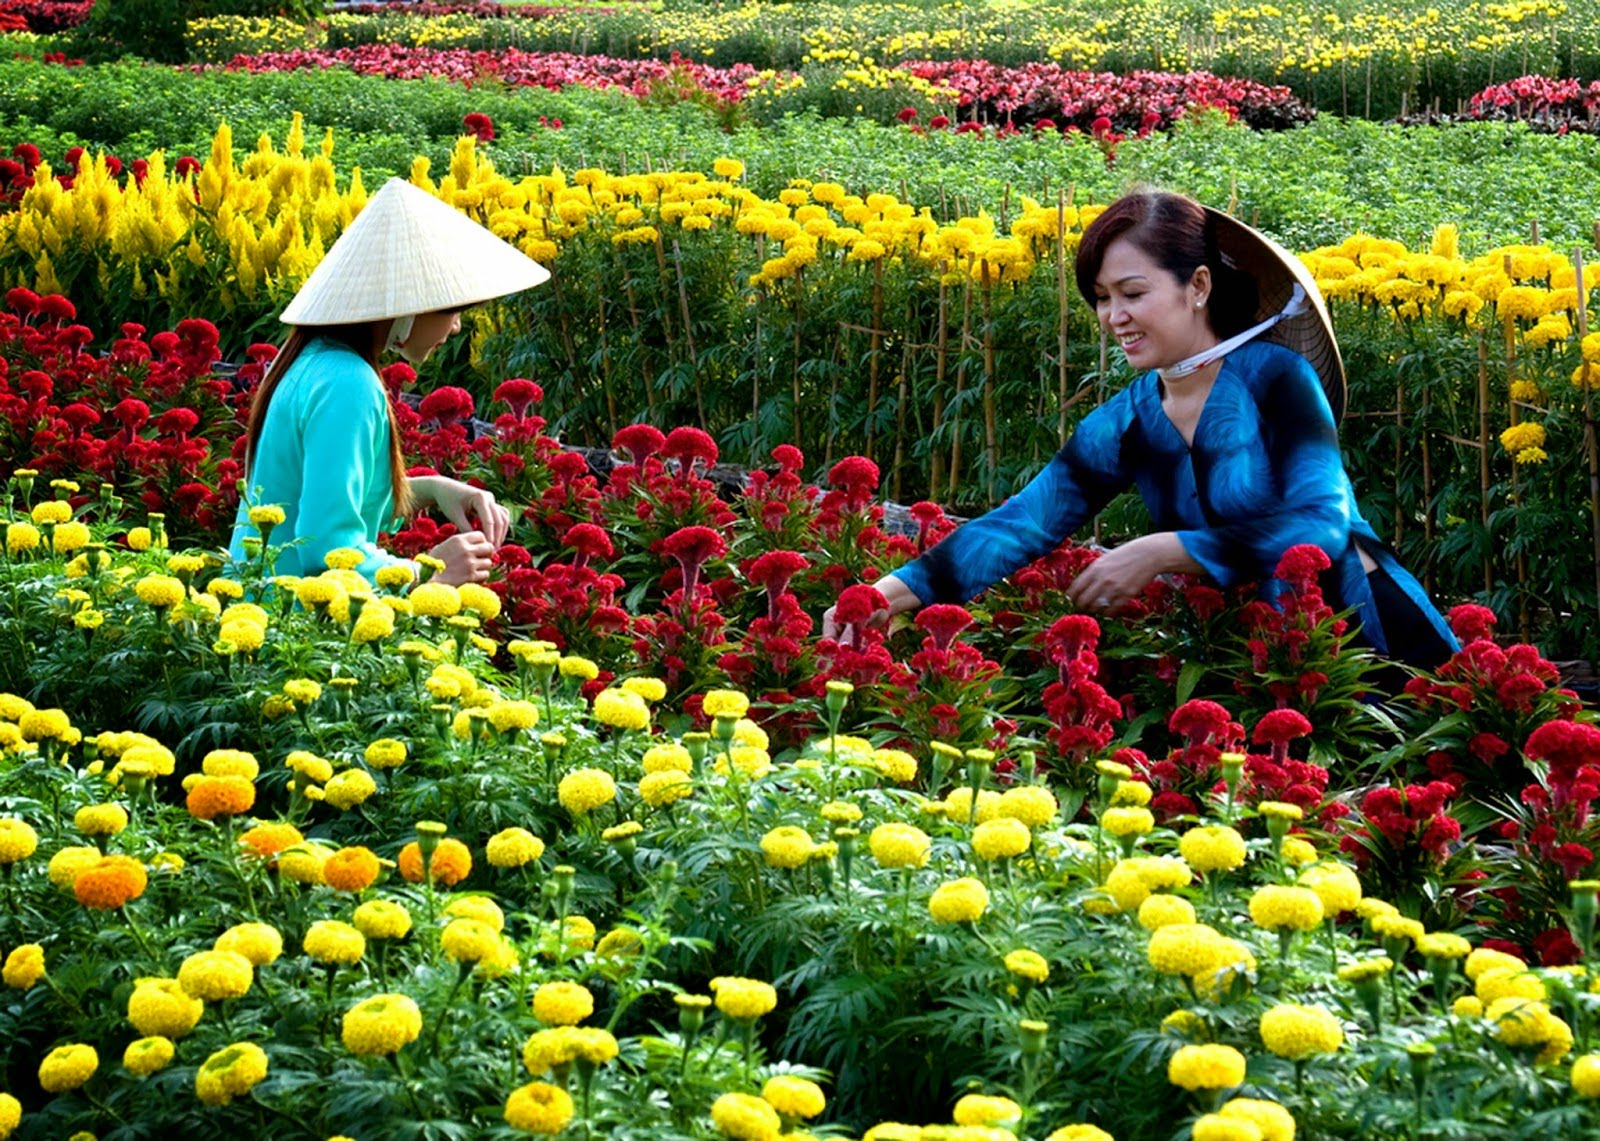 cai mon orchard village ben tre, flower